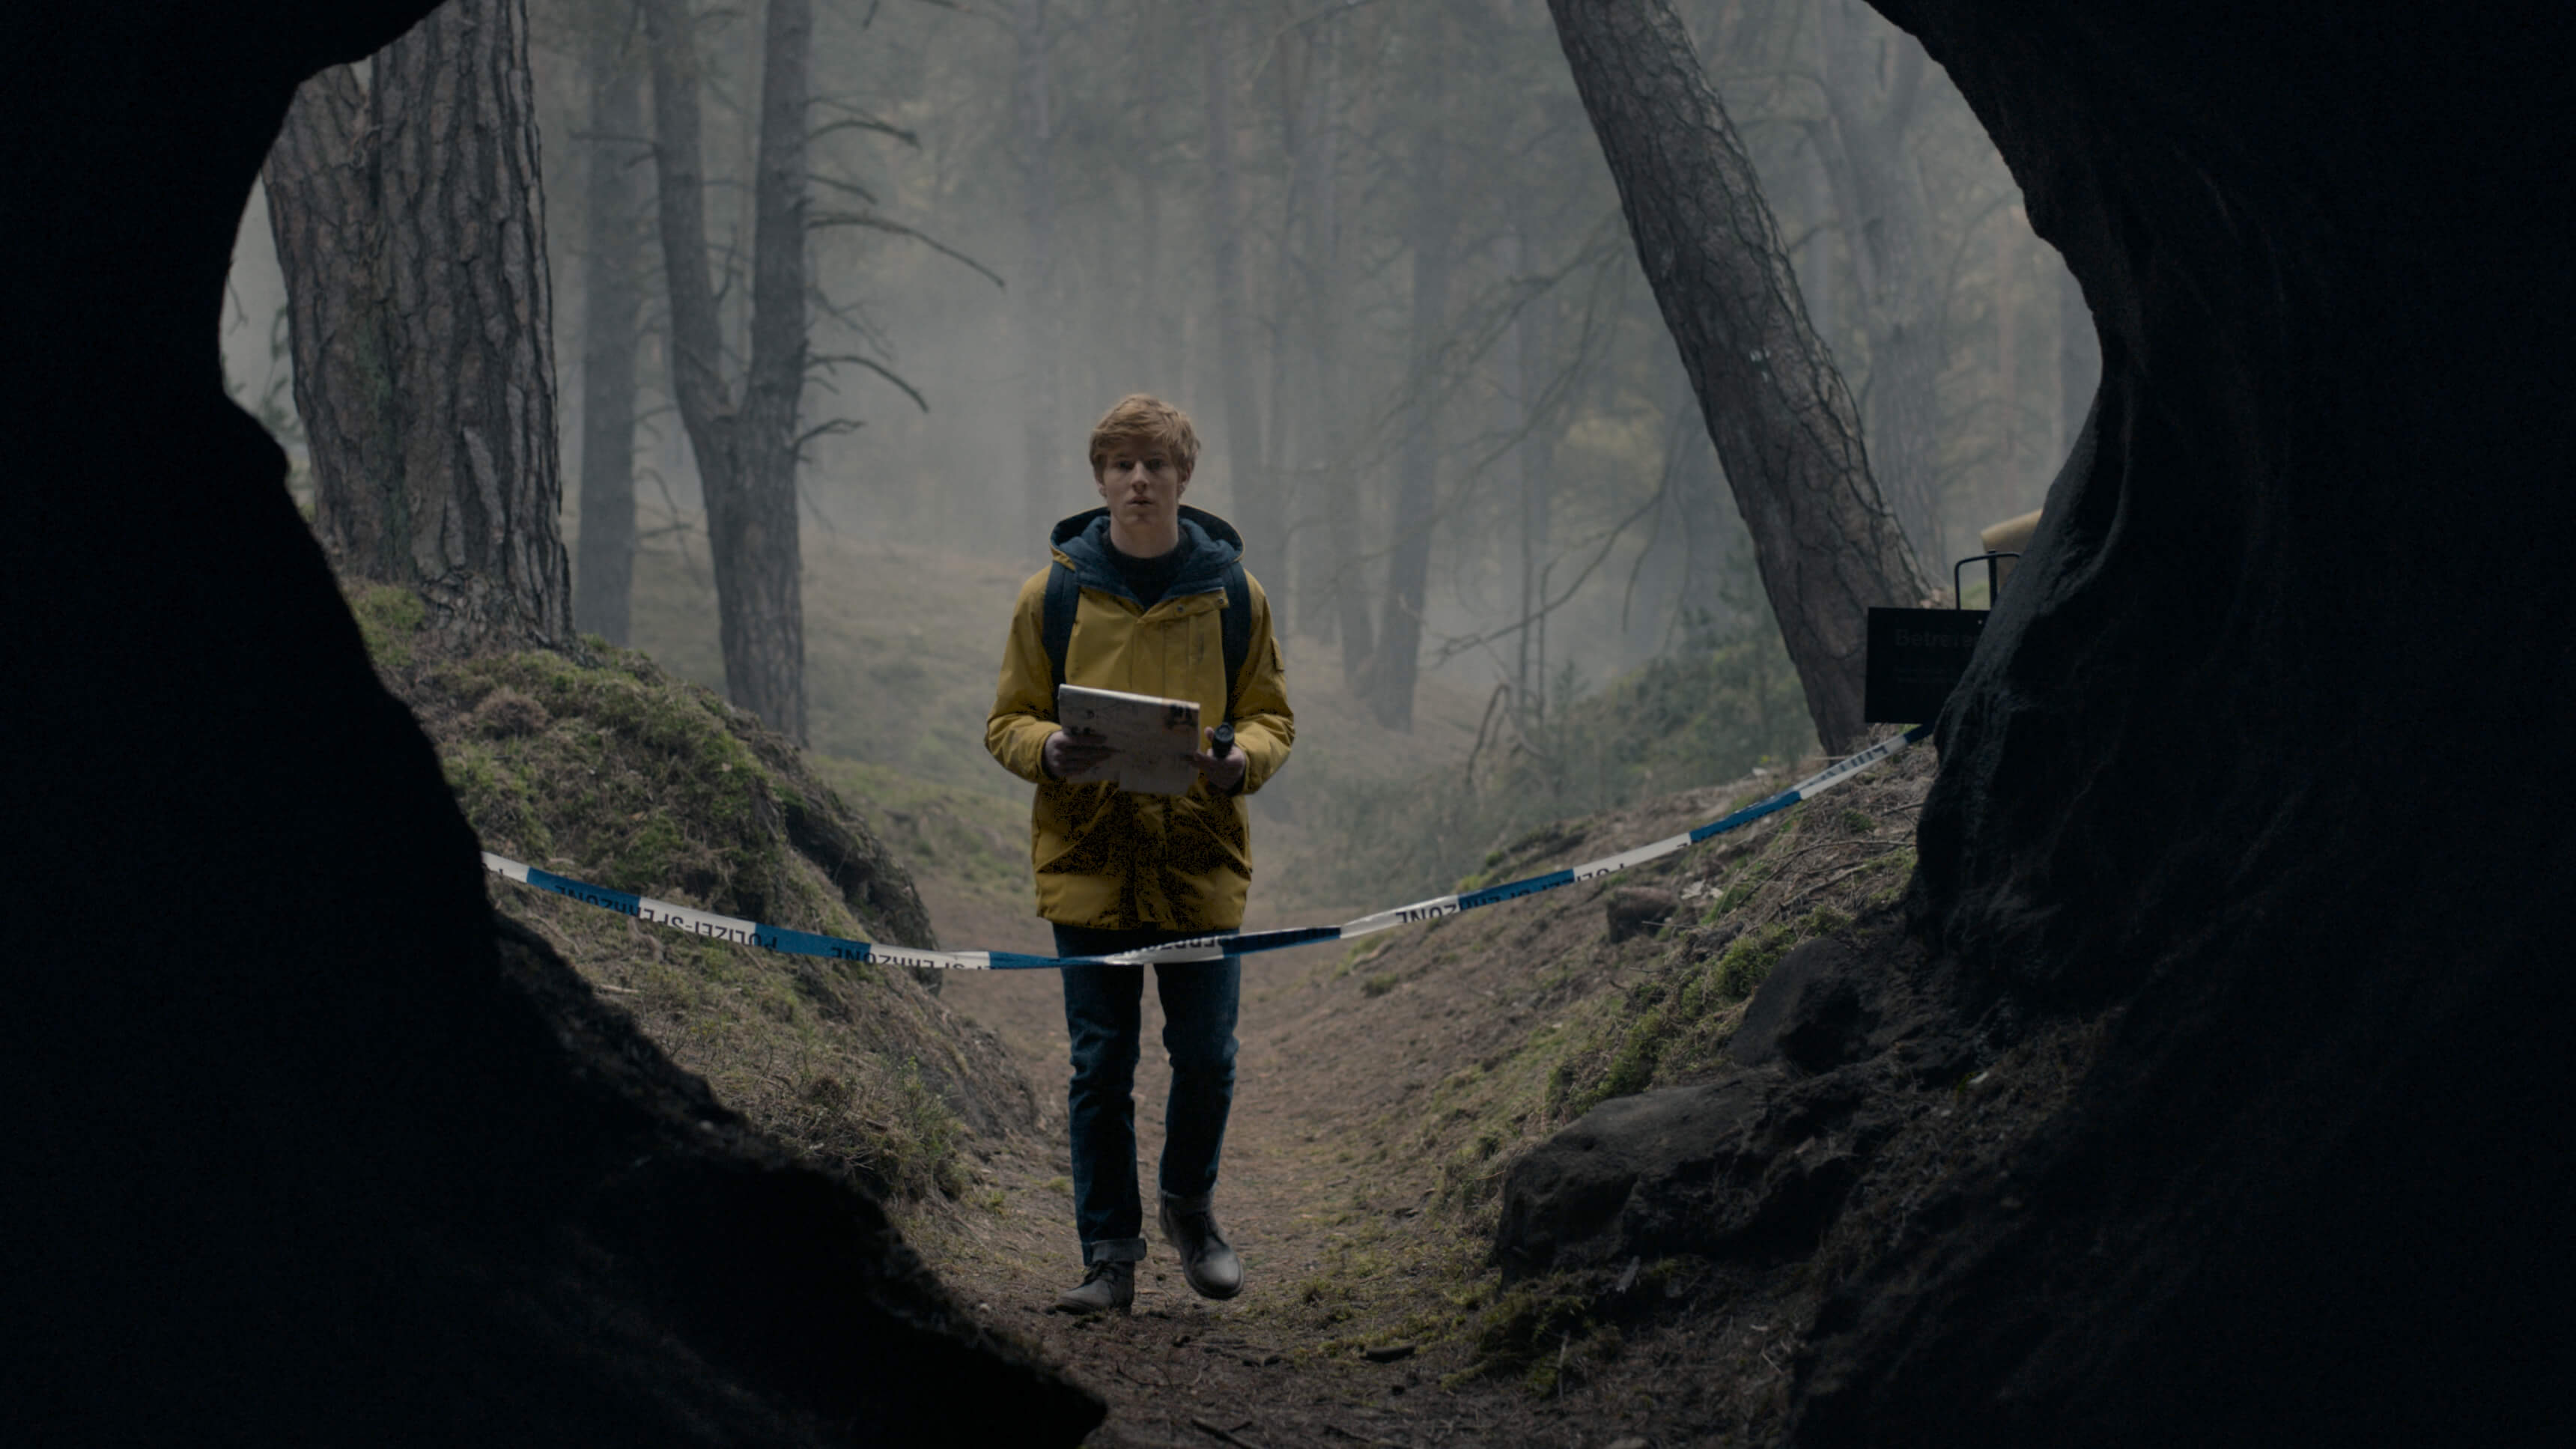 TV Demand Last Week (Jan 11, 2018): Black Mirror, Top US Subgenres, Dark, GOT News